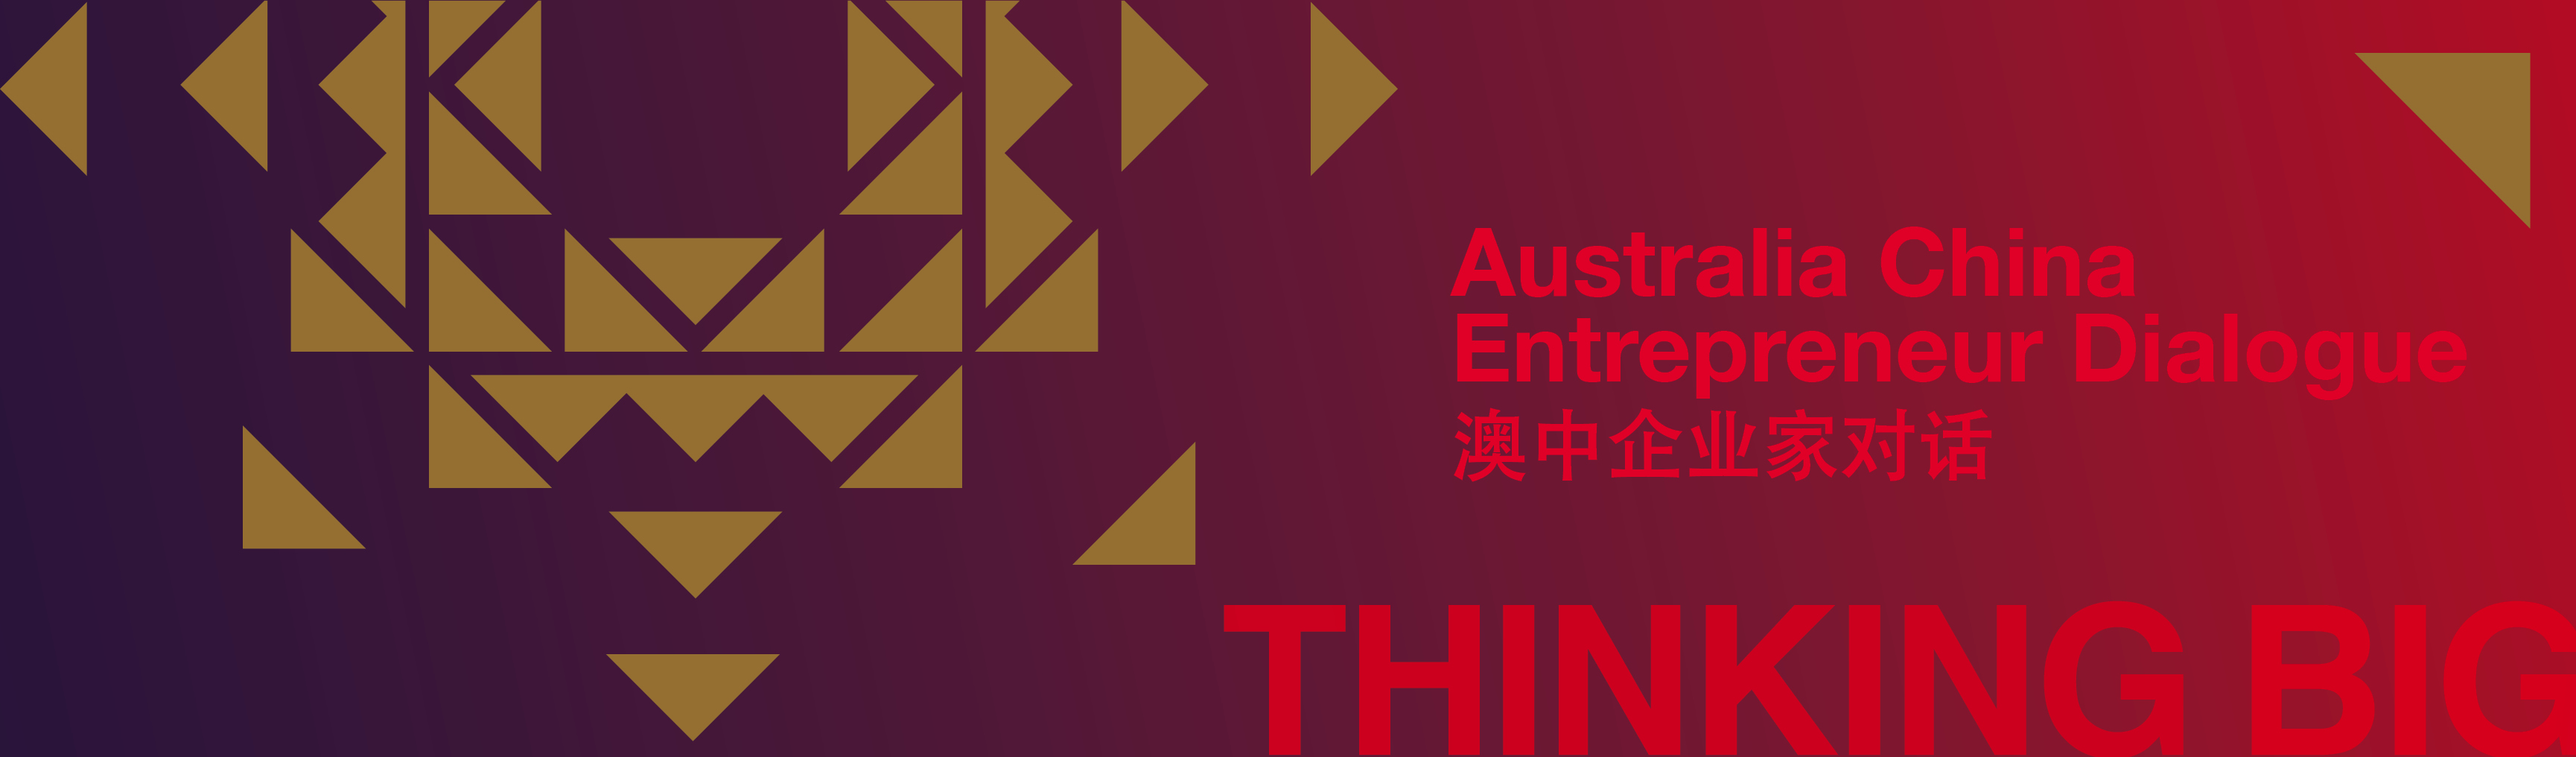 Tickets for The Australia China Entrepreneur Dialogue in Sydney from Ticketbooth